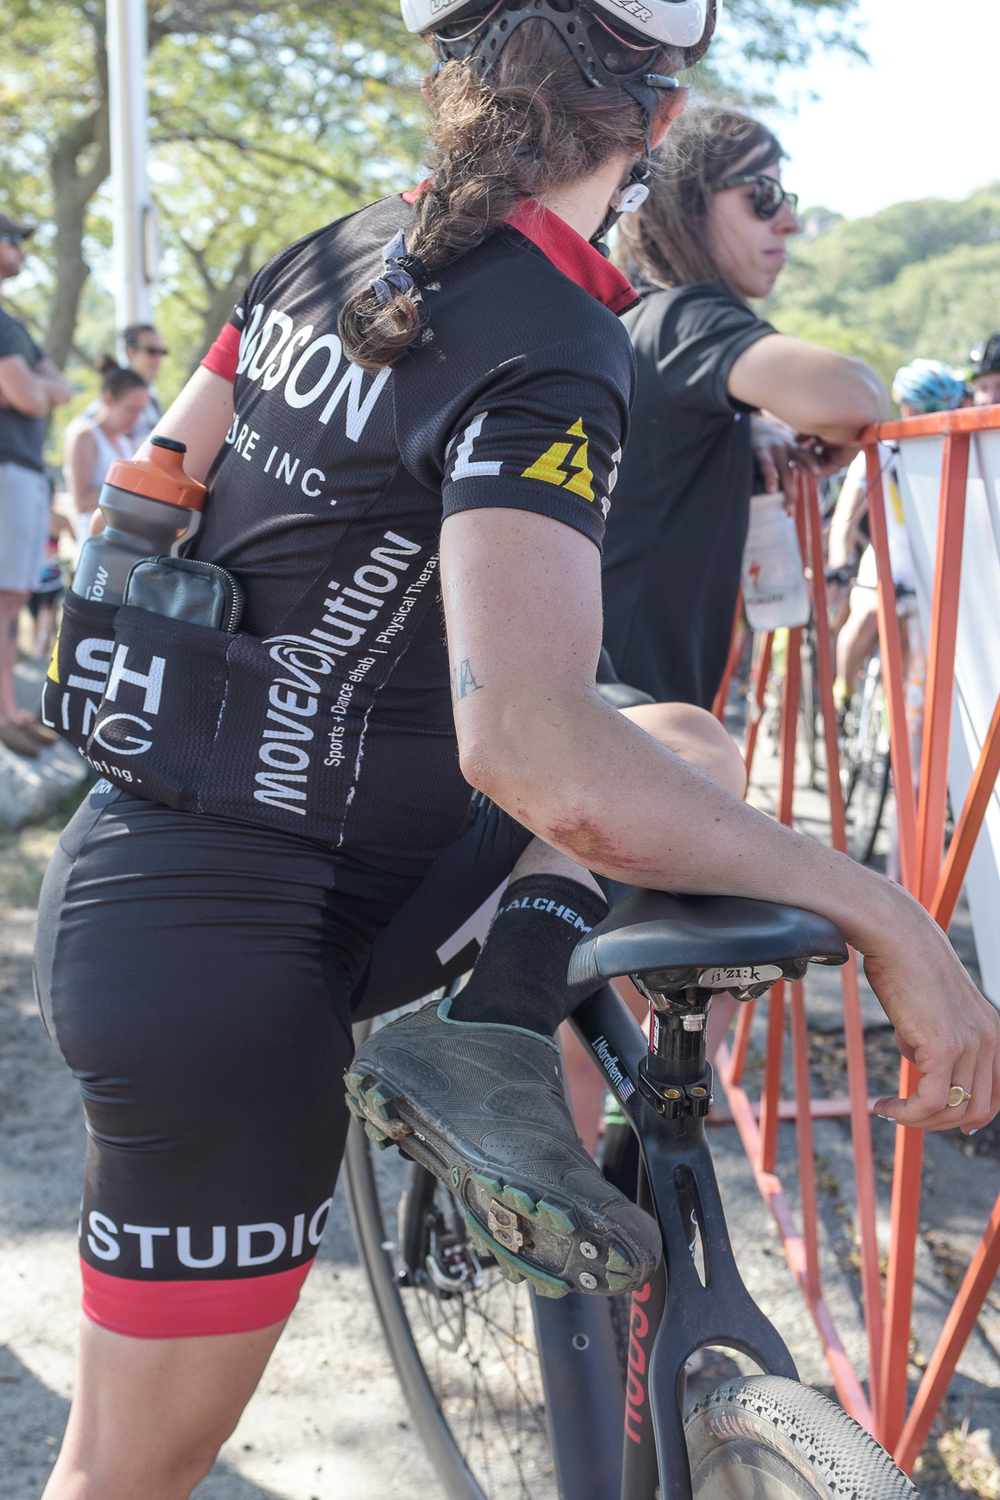 141009_Cyclocross_Pretty_Damned_Fast_Heather_Jen_Jordan_Rough_edits-24.jpg